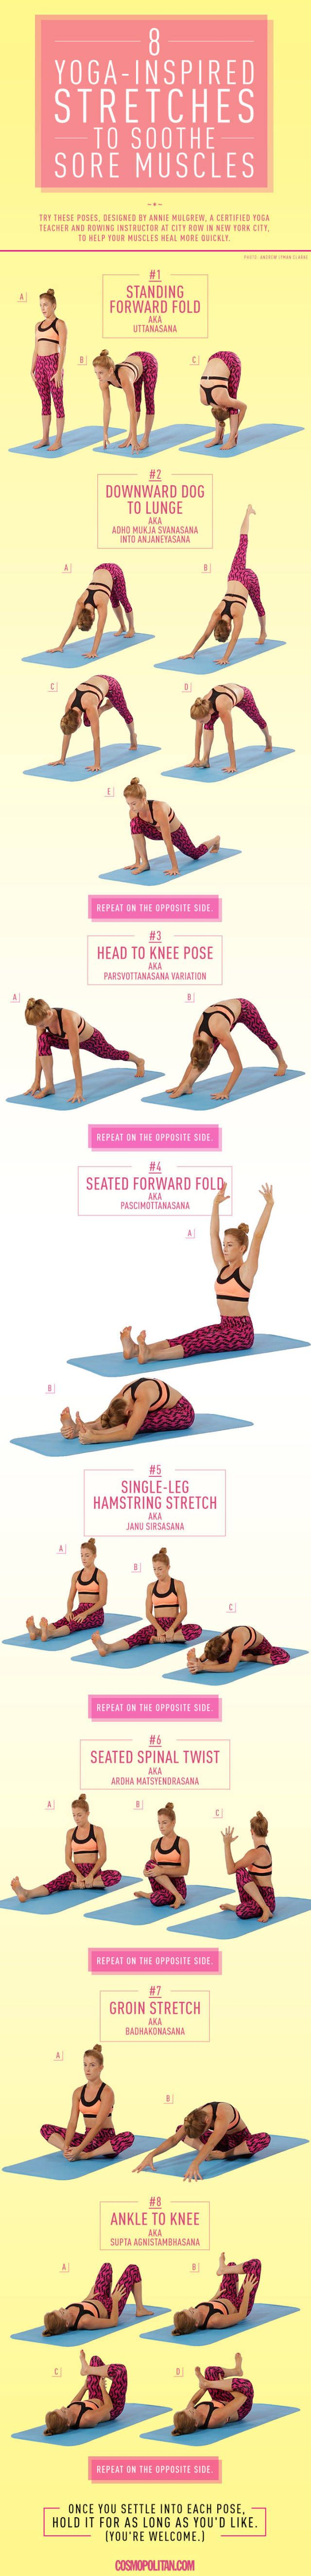 Say hello to yoga for sore muscles.